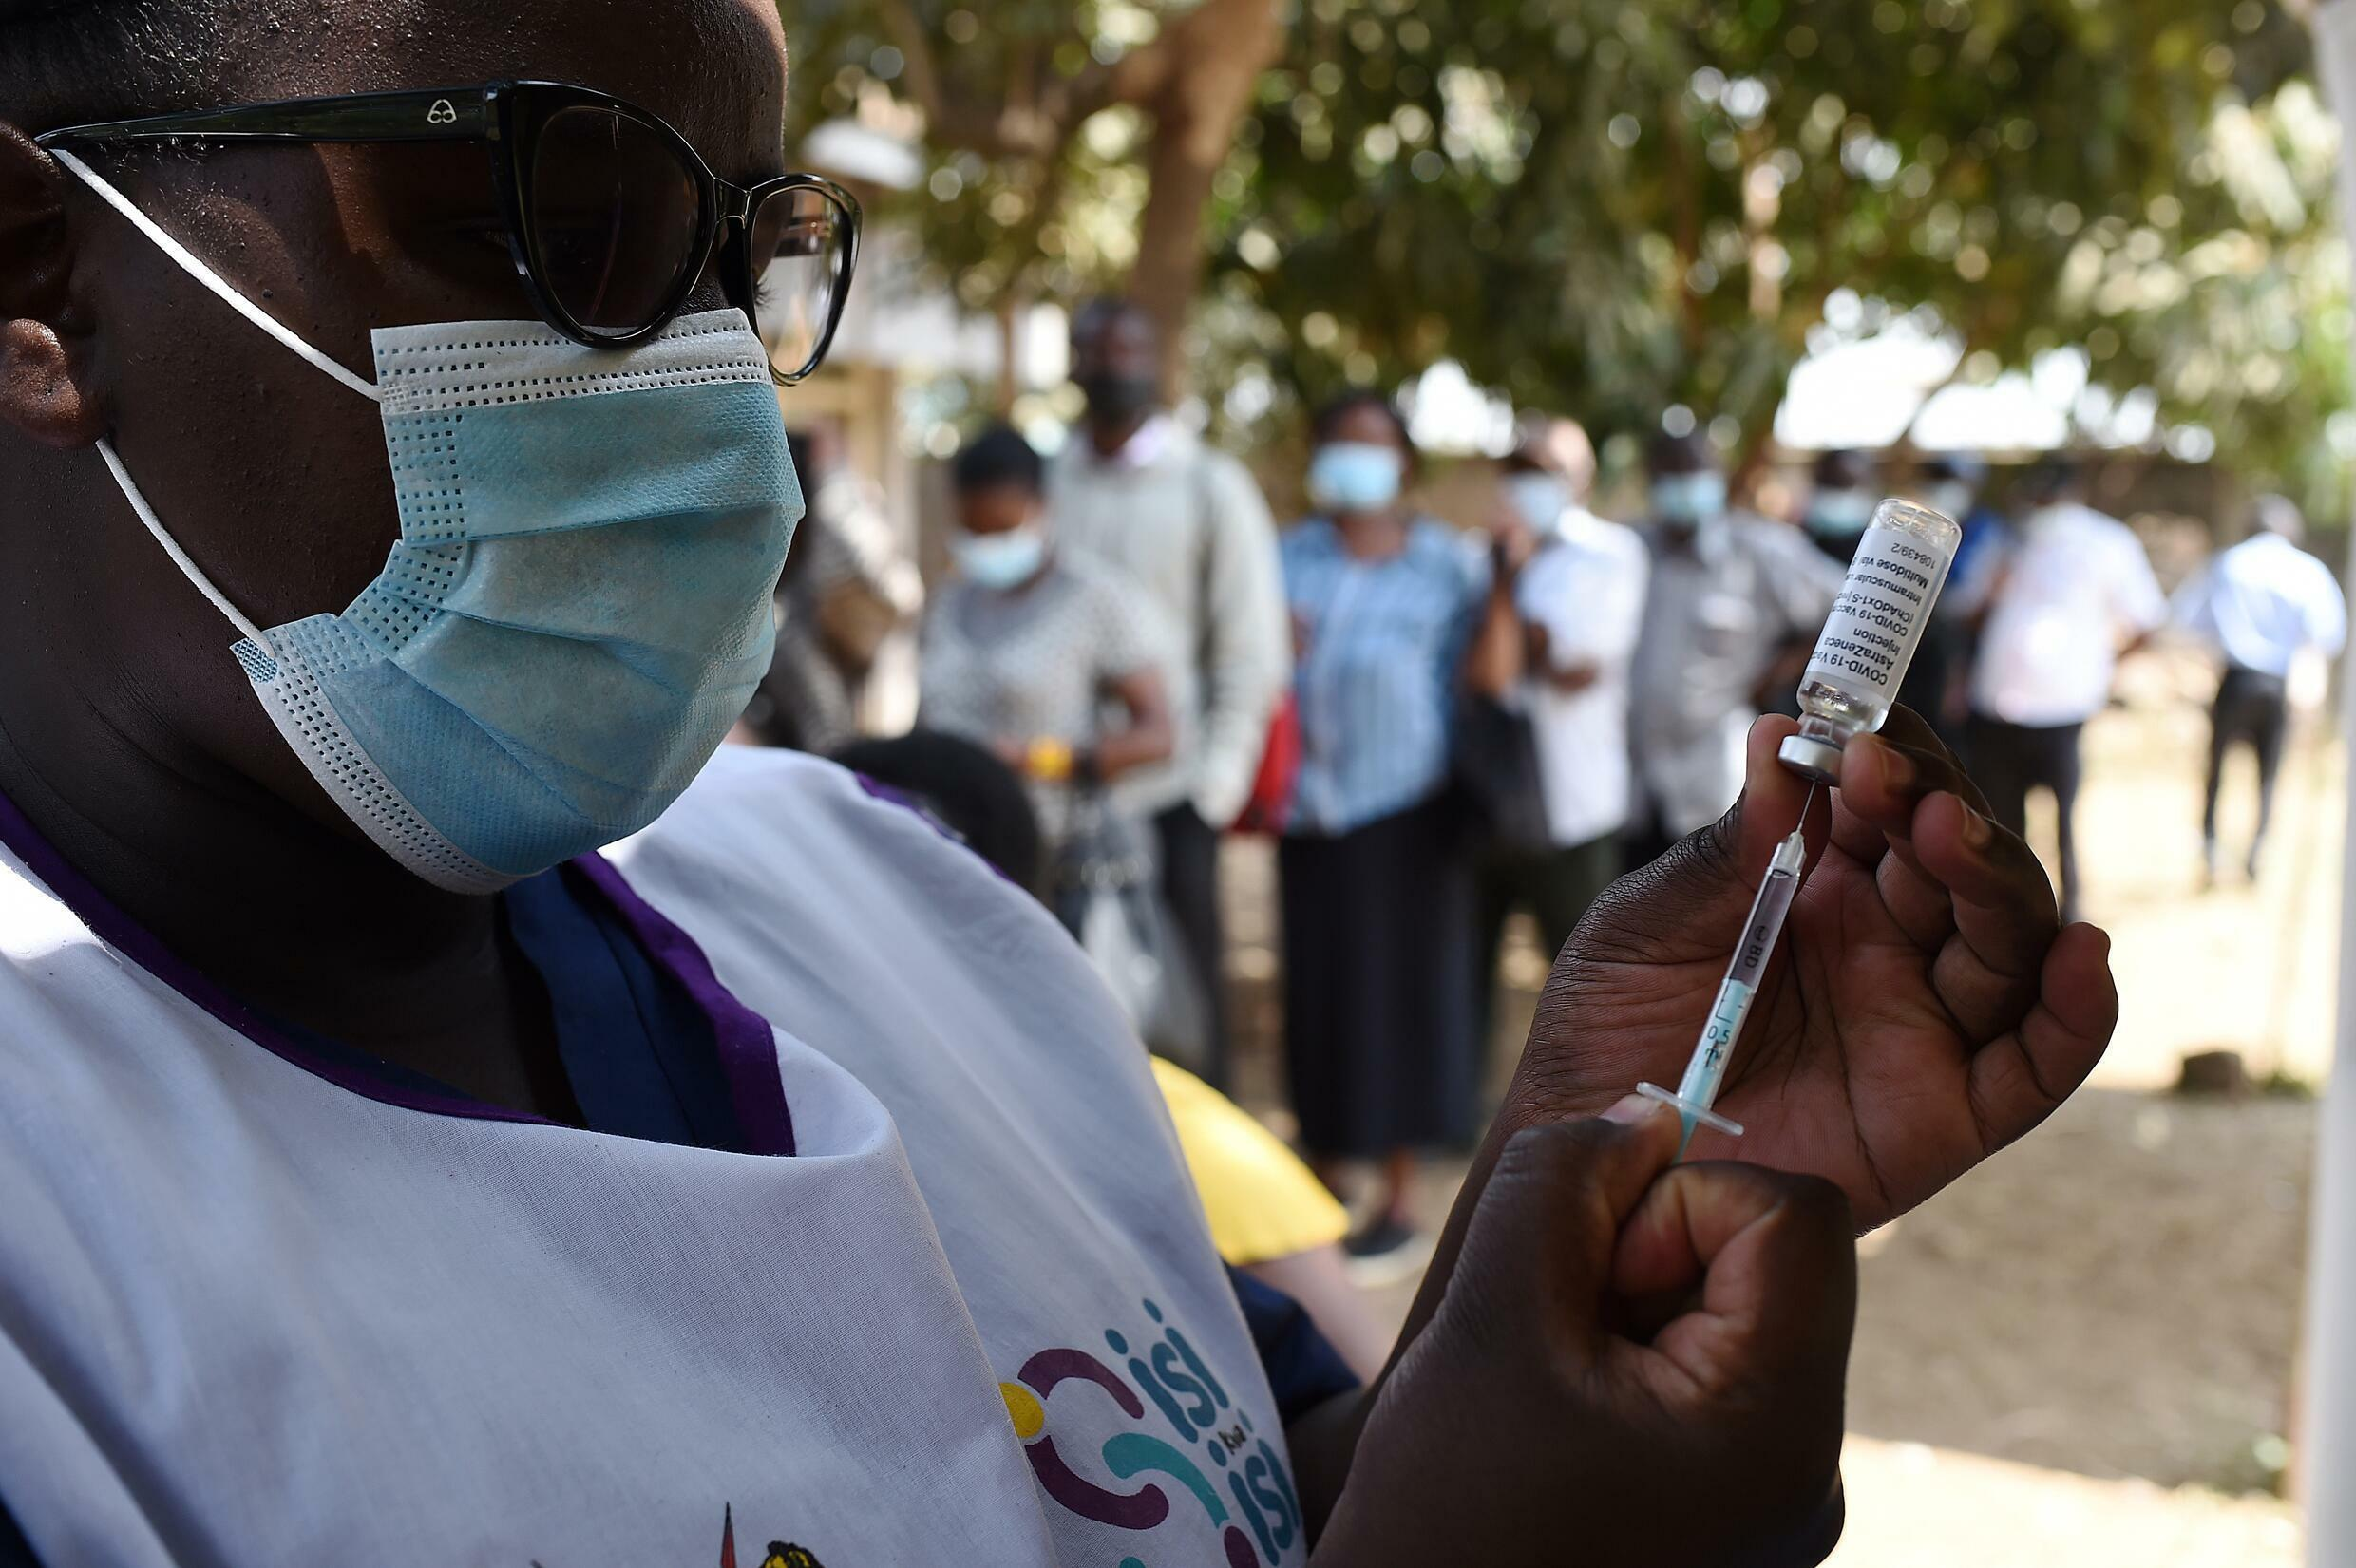 Less than three percent of Kenya's population has been vaccinated